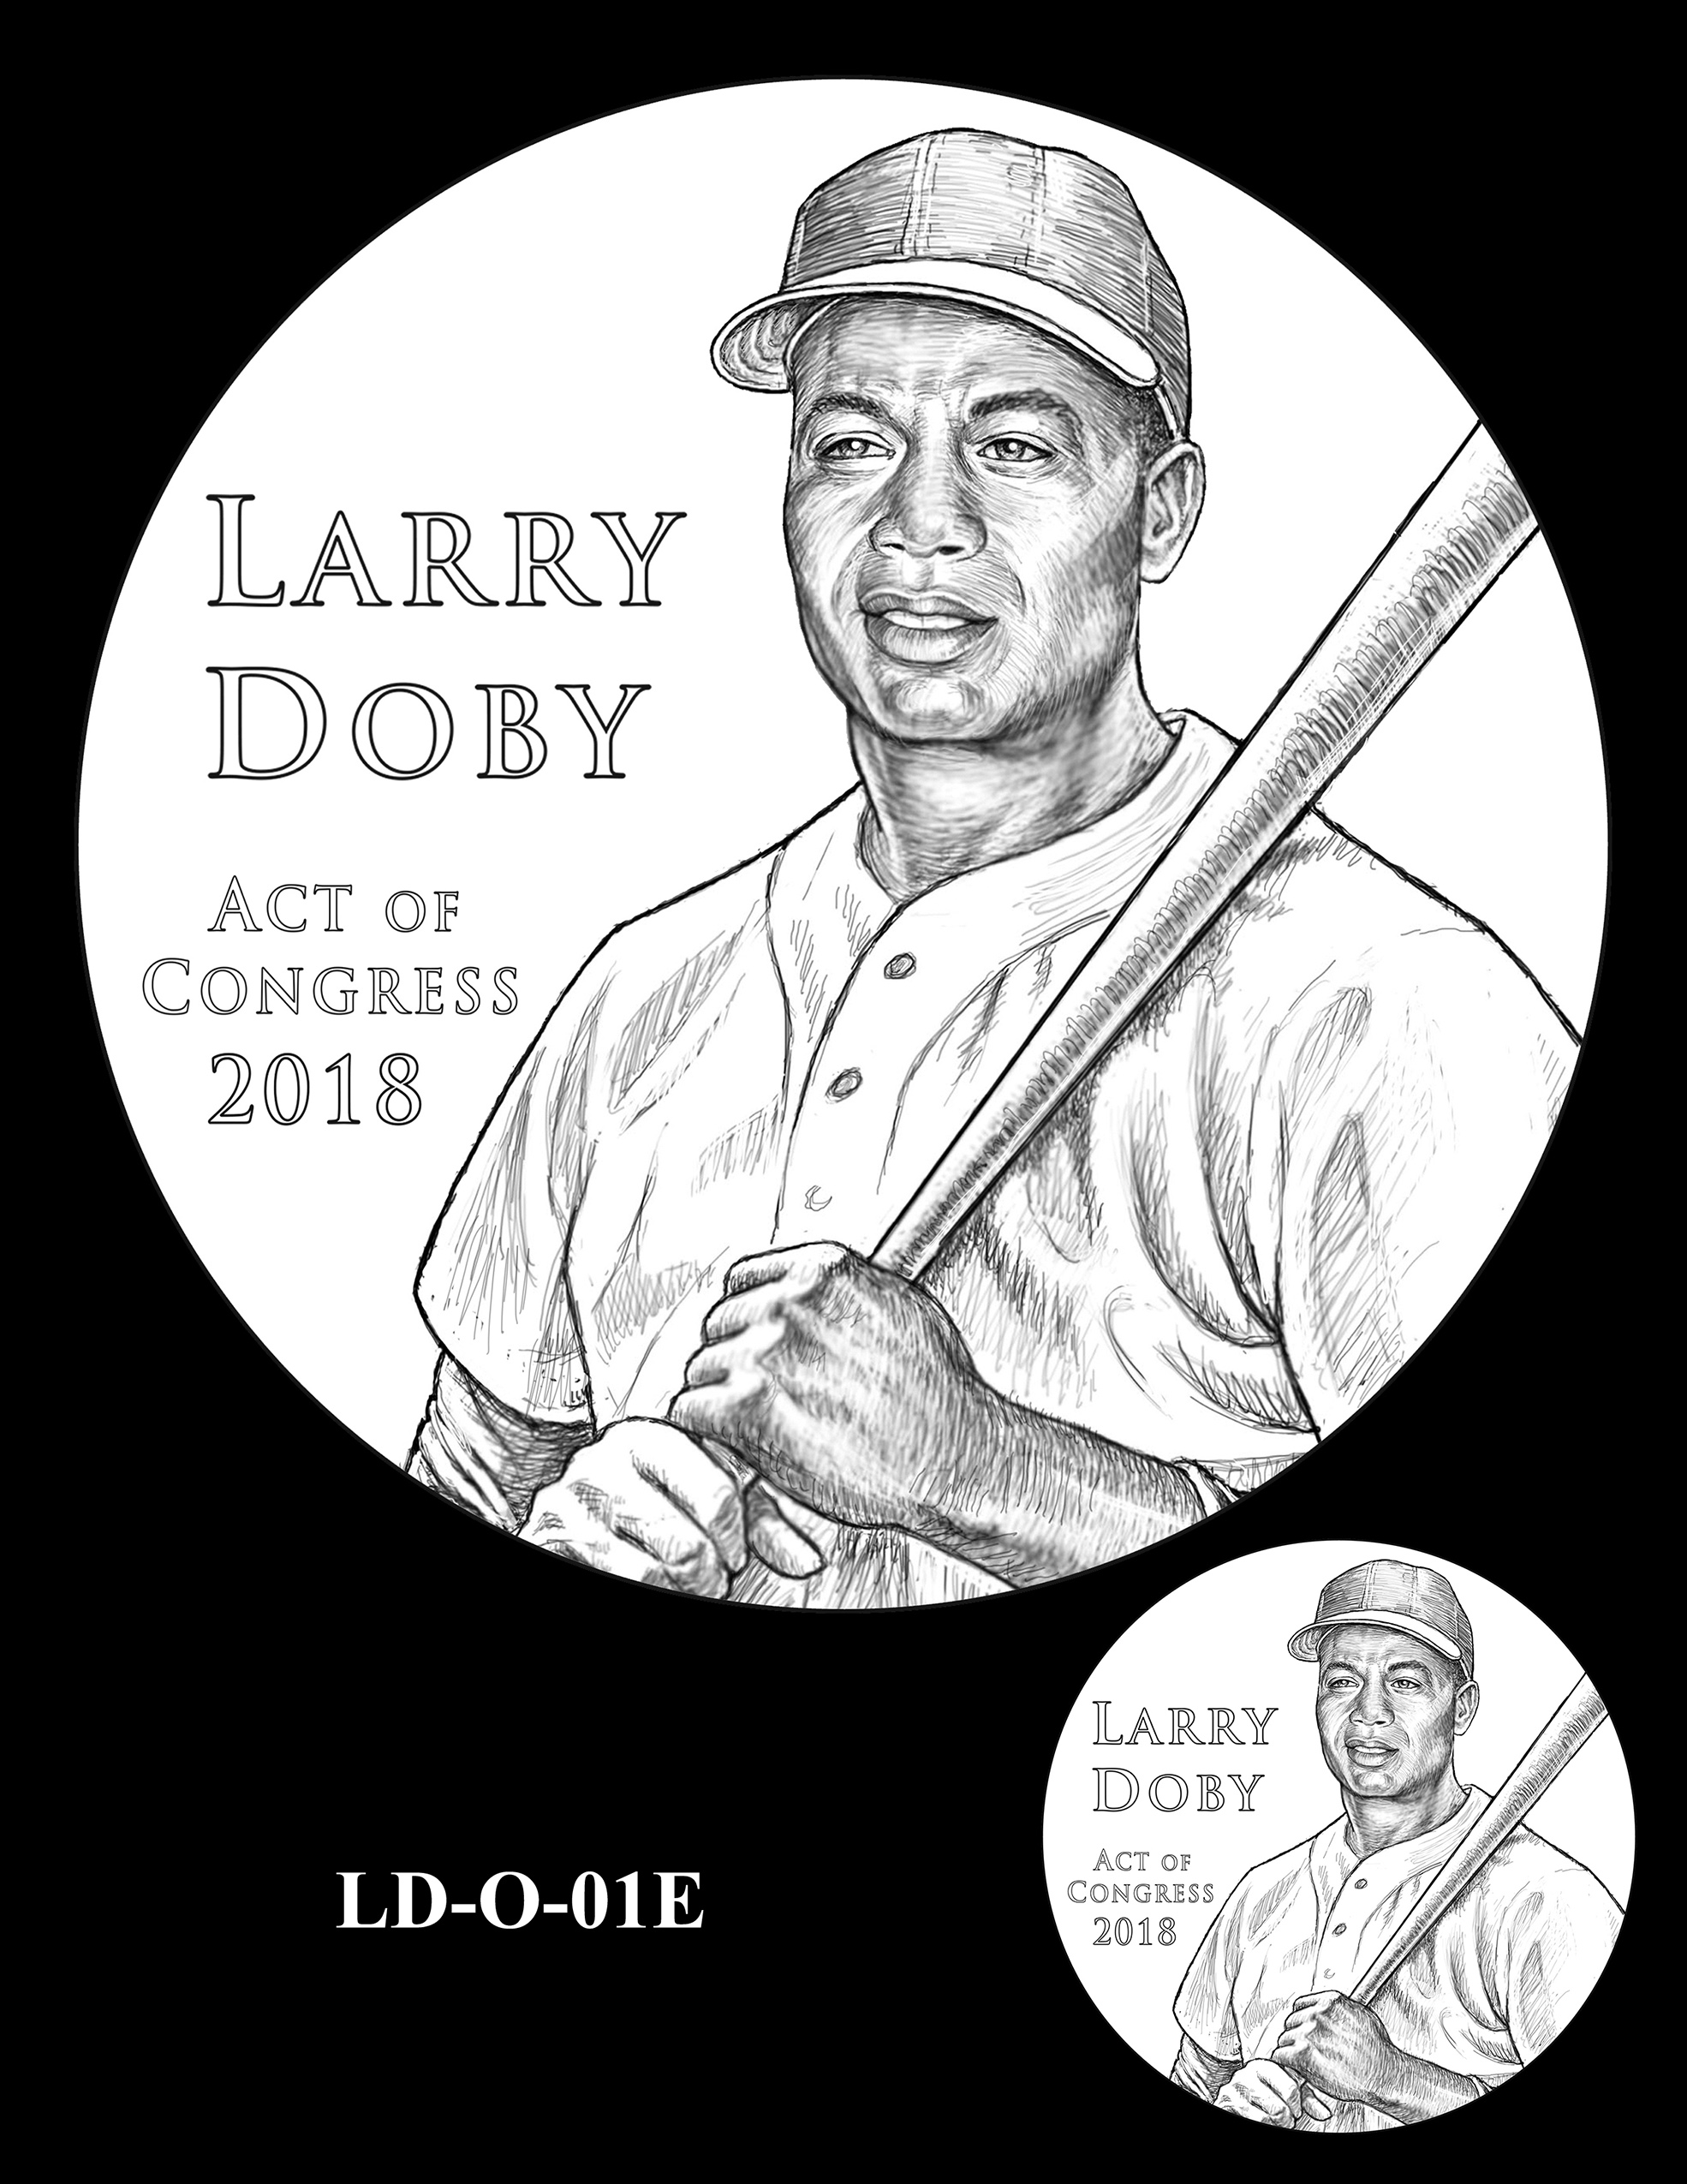 LD-O-01E -- Larry Doby Congressional Gold Medal